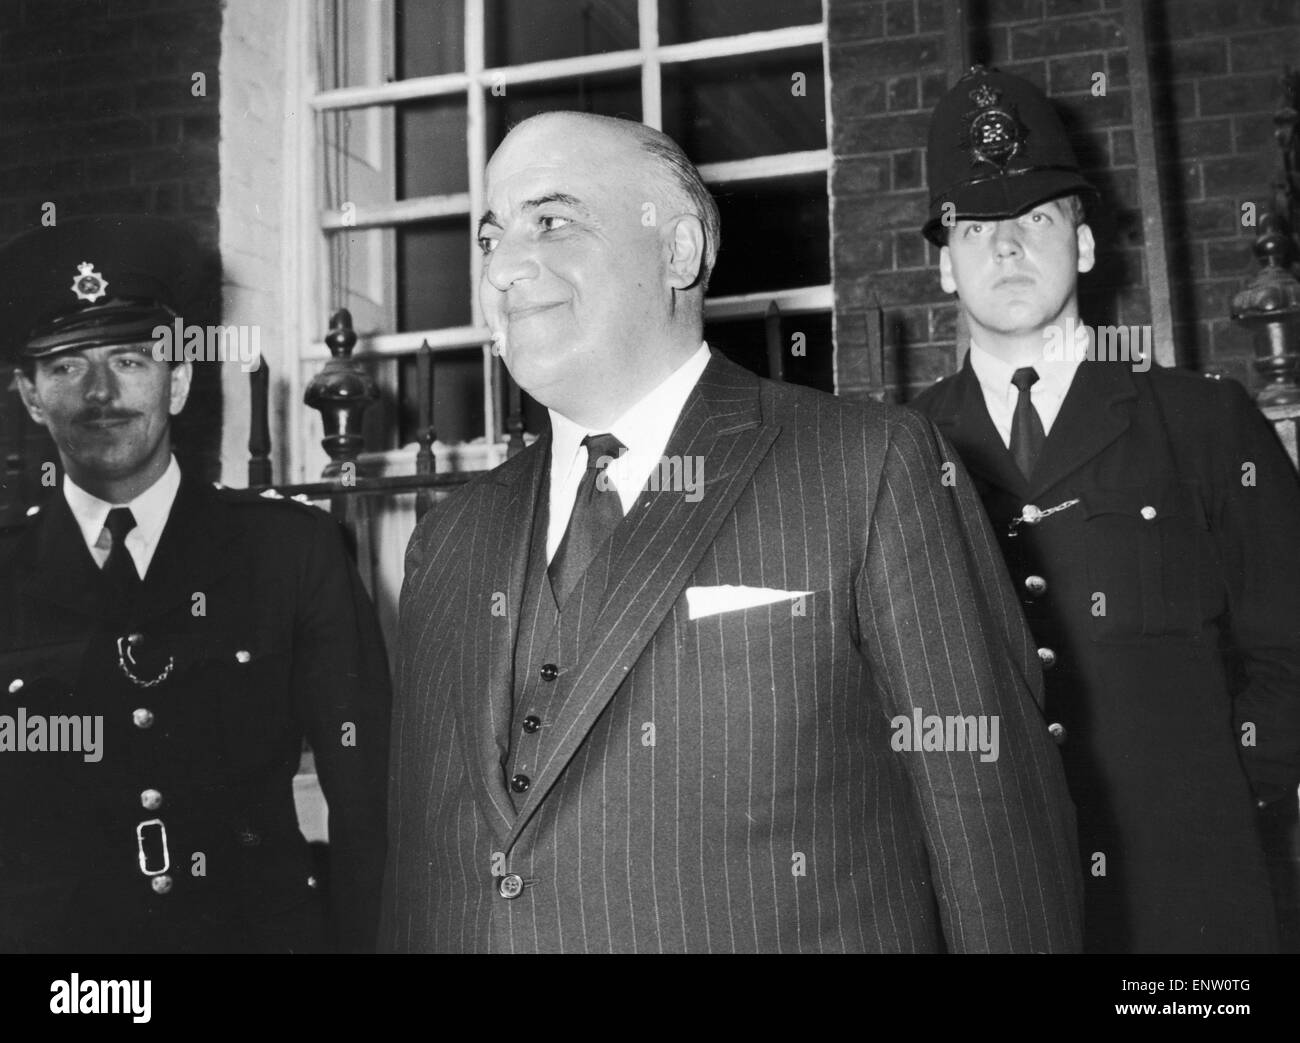 Lord Kilmuir Lord Chancellor (Sir David Maxwell Fyffe) seen here outside 10 Downing Street following the resignation - Stock Image